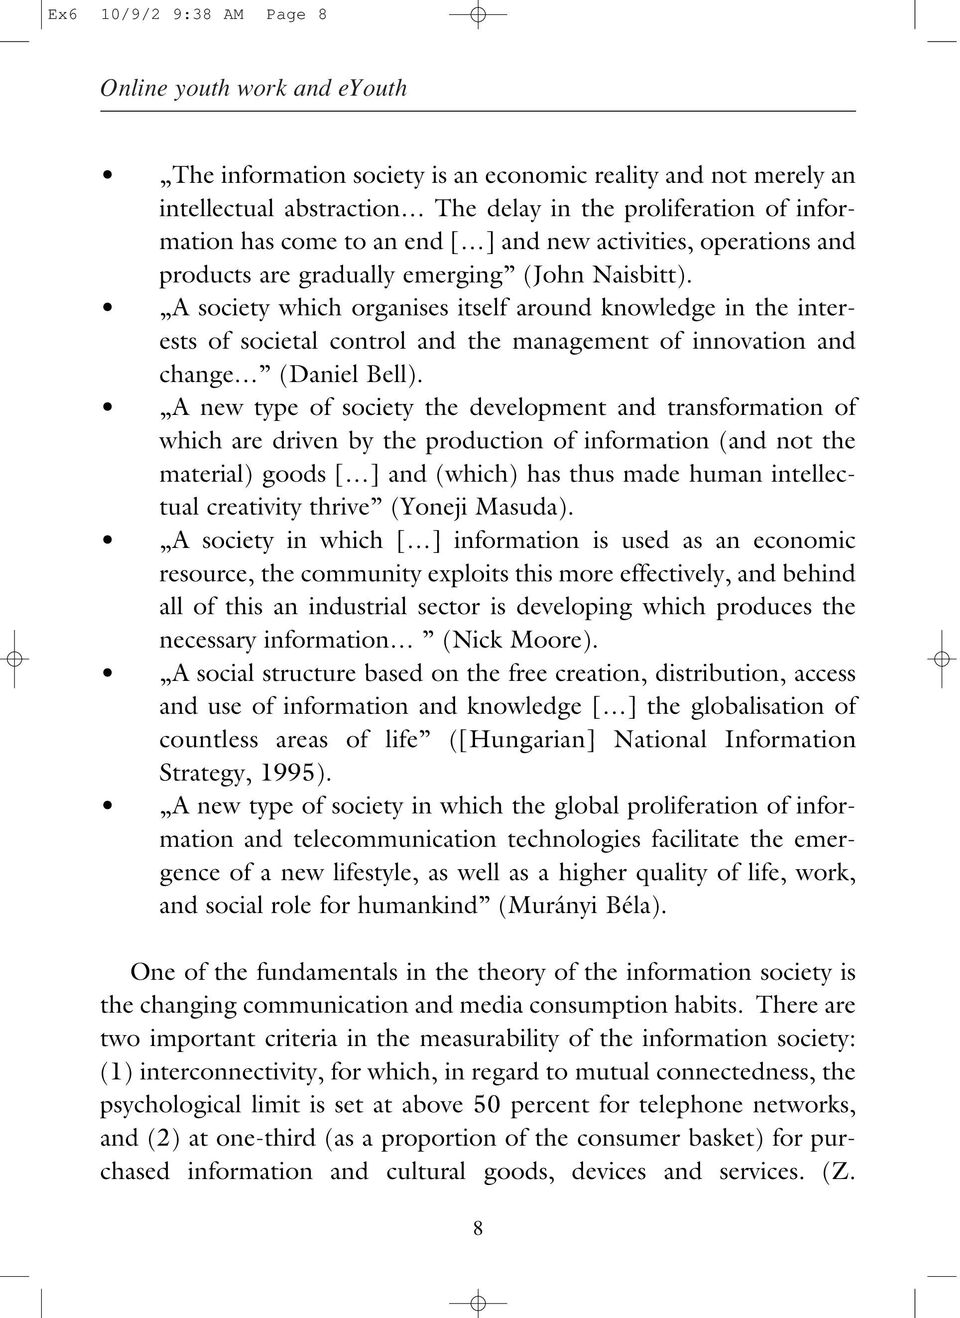 A society which organises itself around knowledge in the interests of societal control and the management of innovation and change (Daniel Bell).